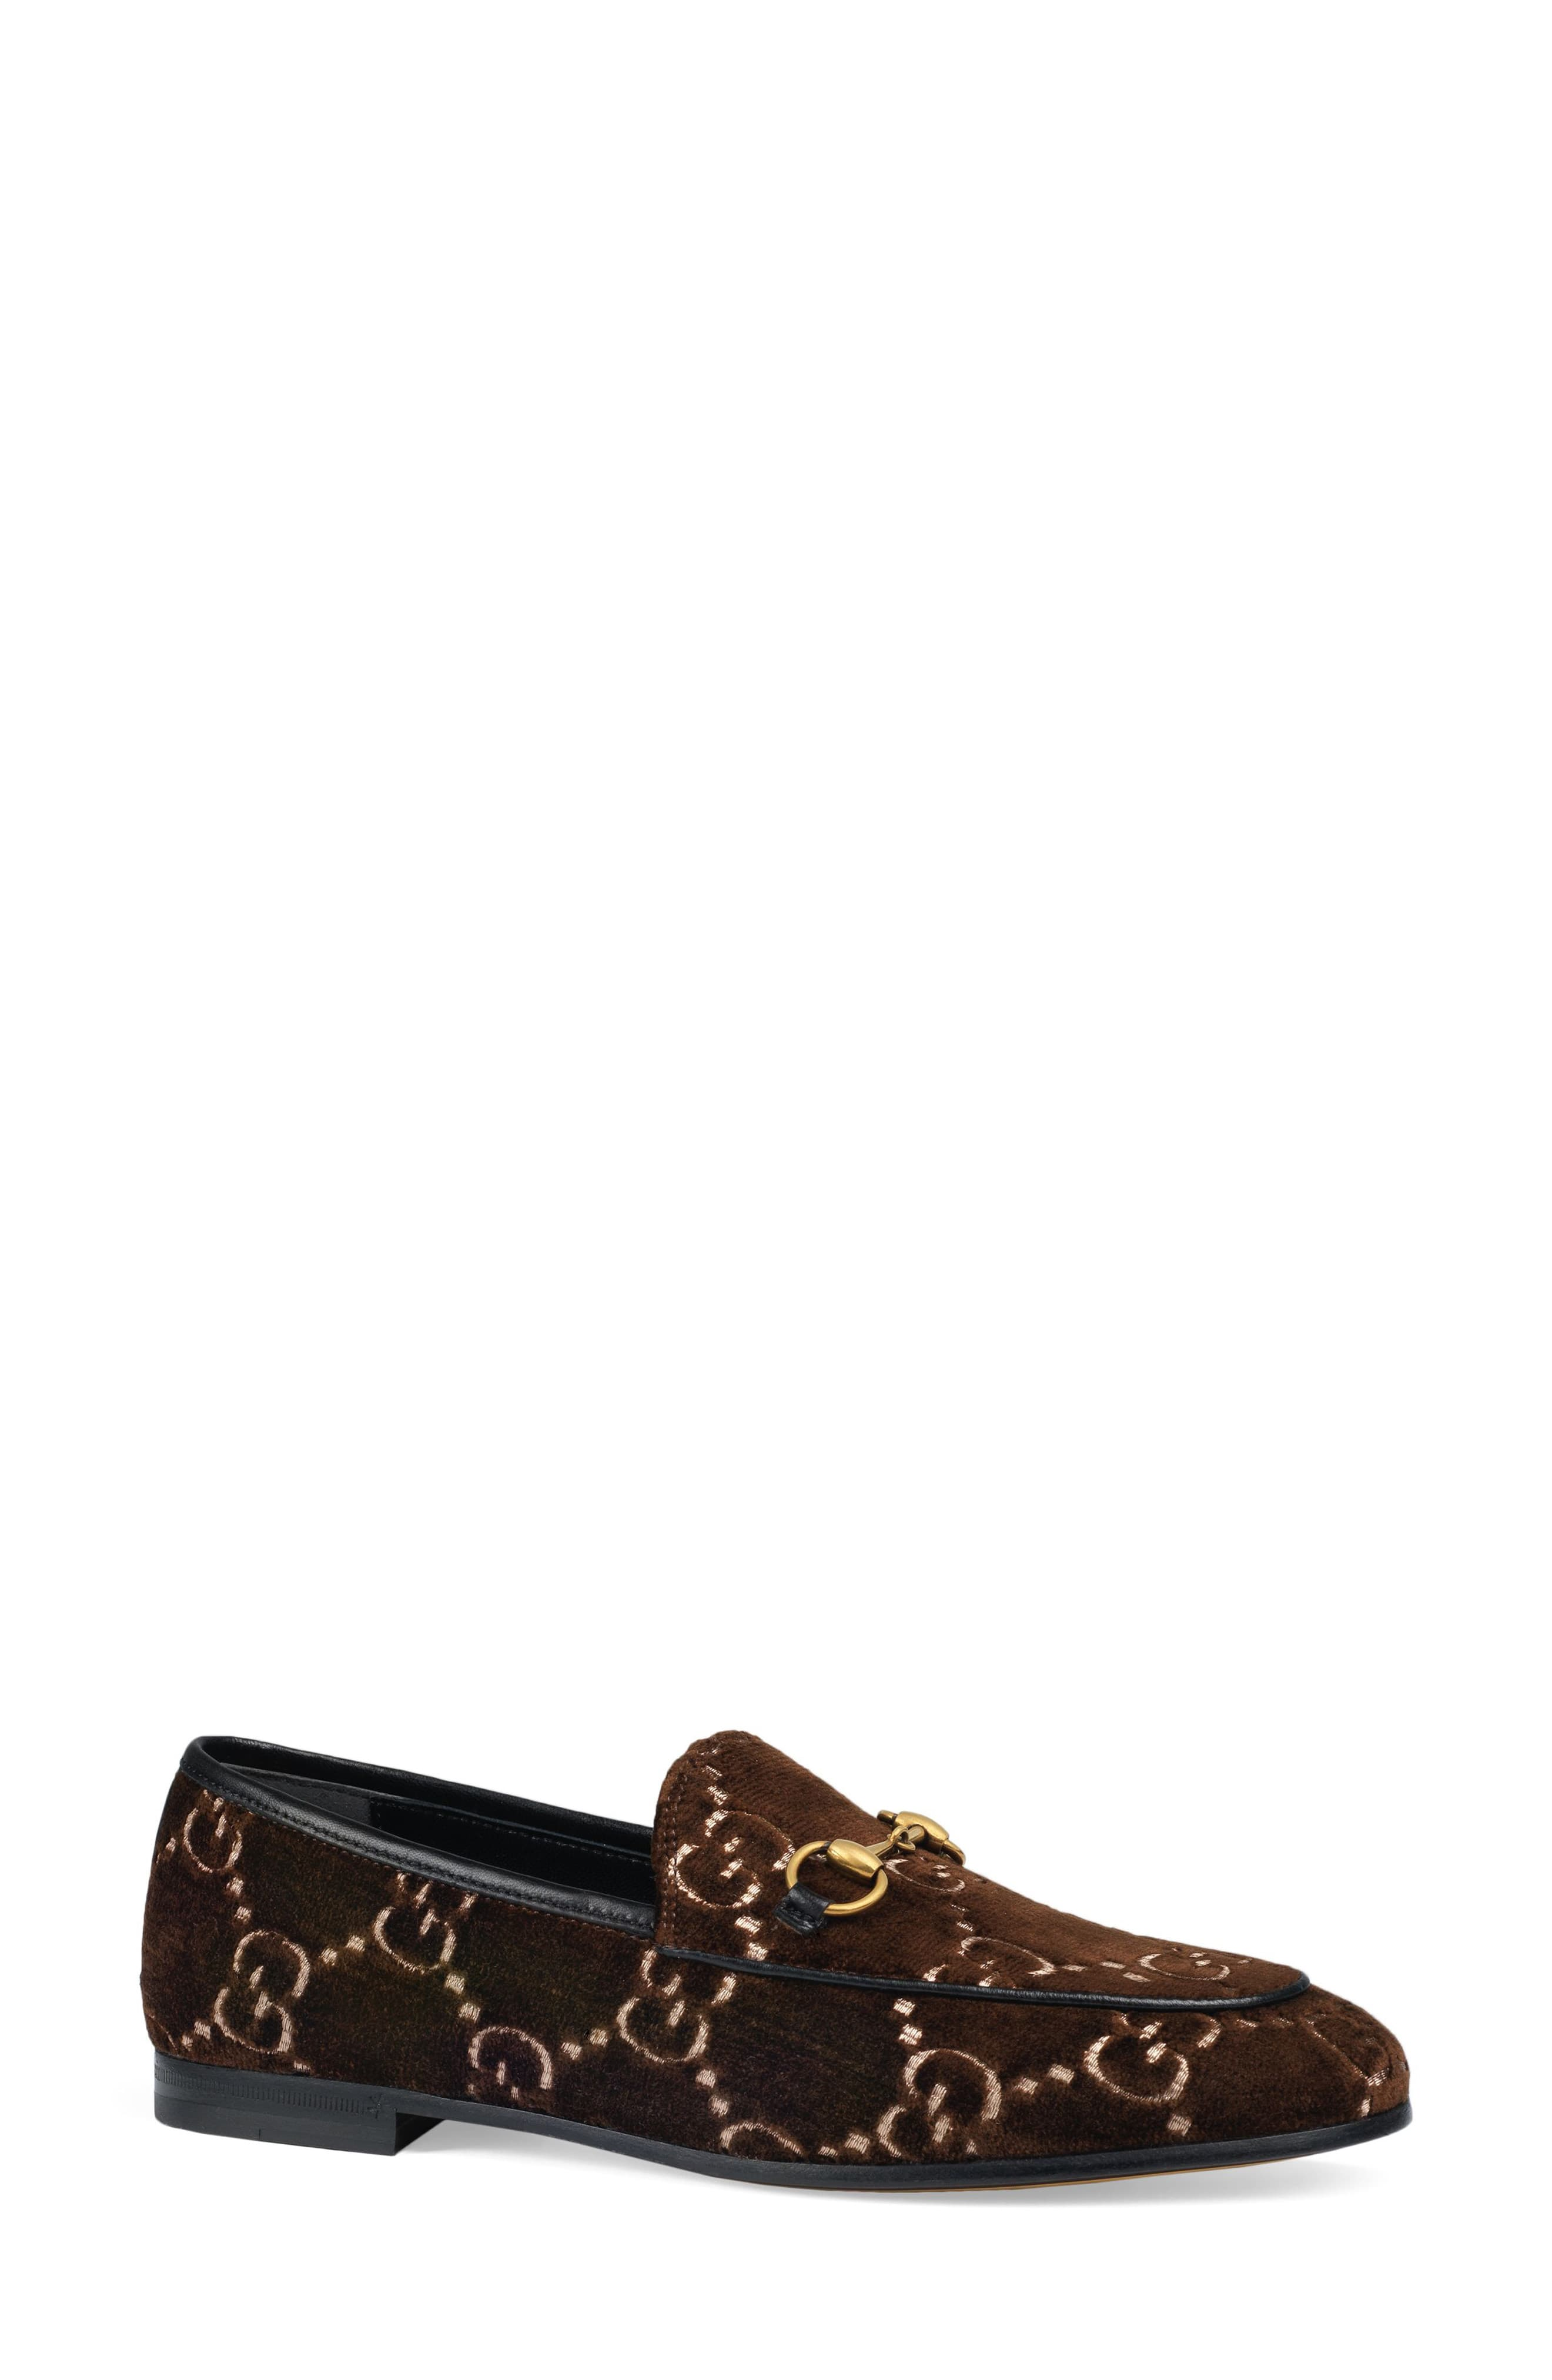 249e3c545 Gucci Jordaan Loafer in 2019 | Products | Gucci jordaan, Gucci ...